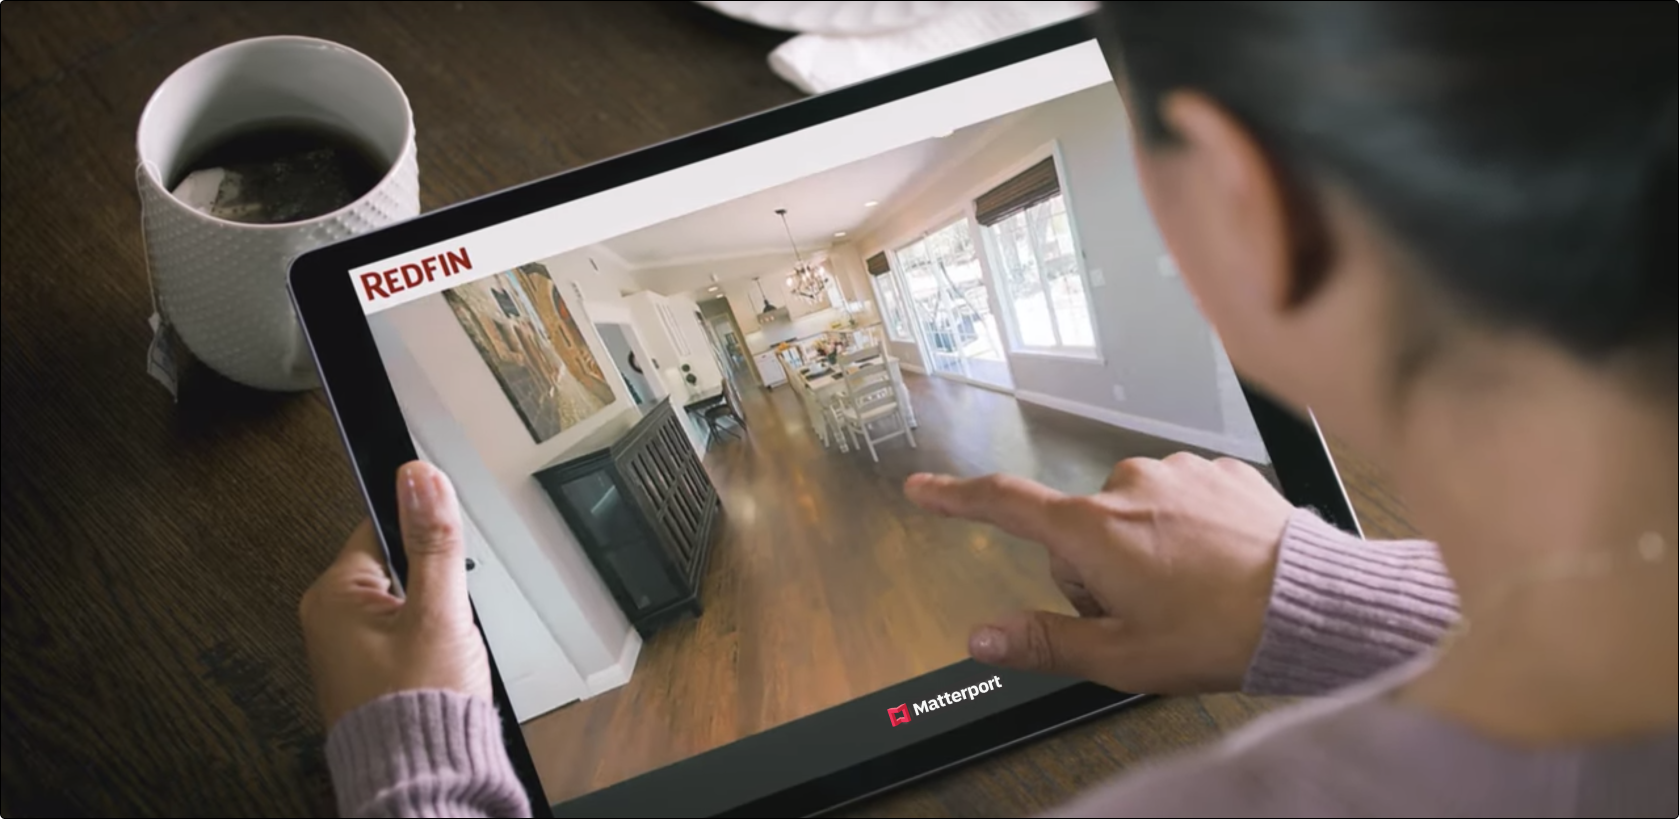 A Matterport real estate tour shown on Redfin